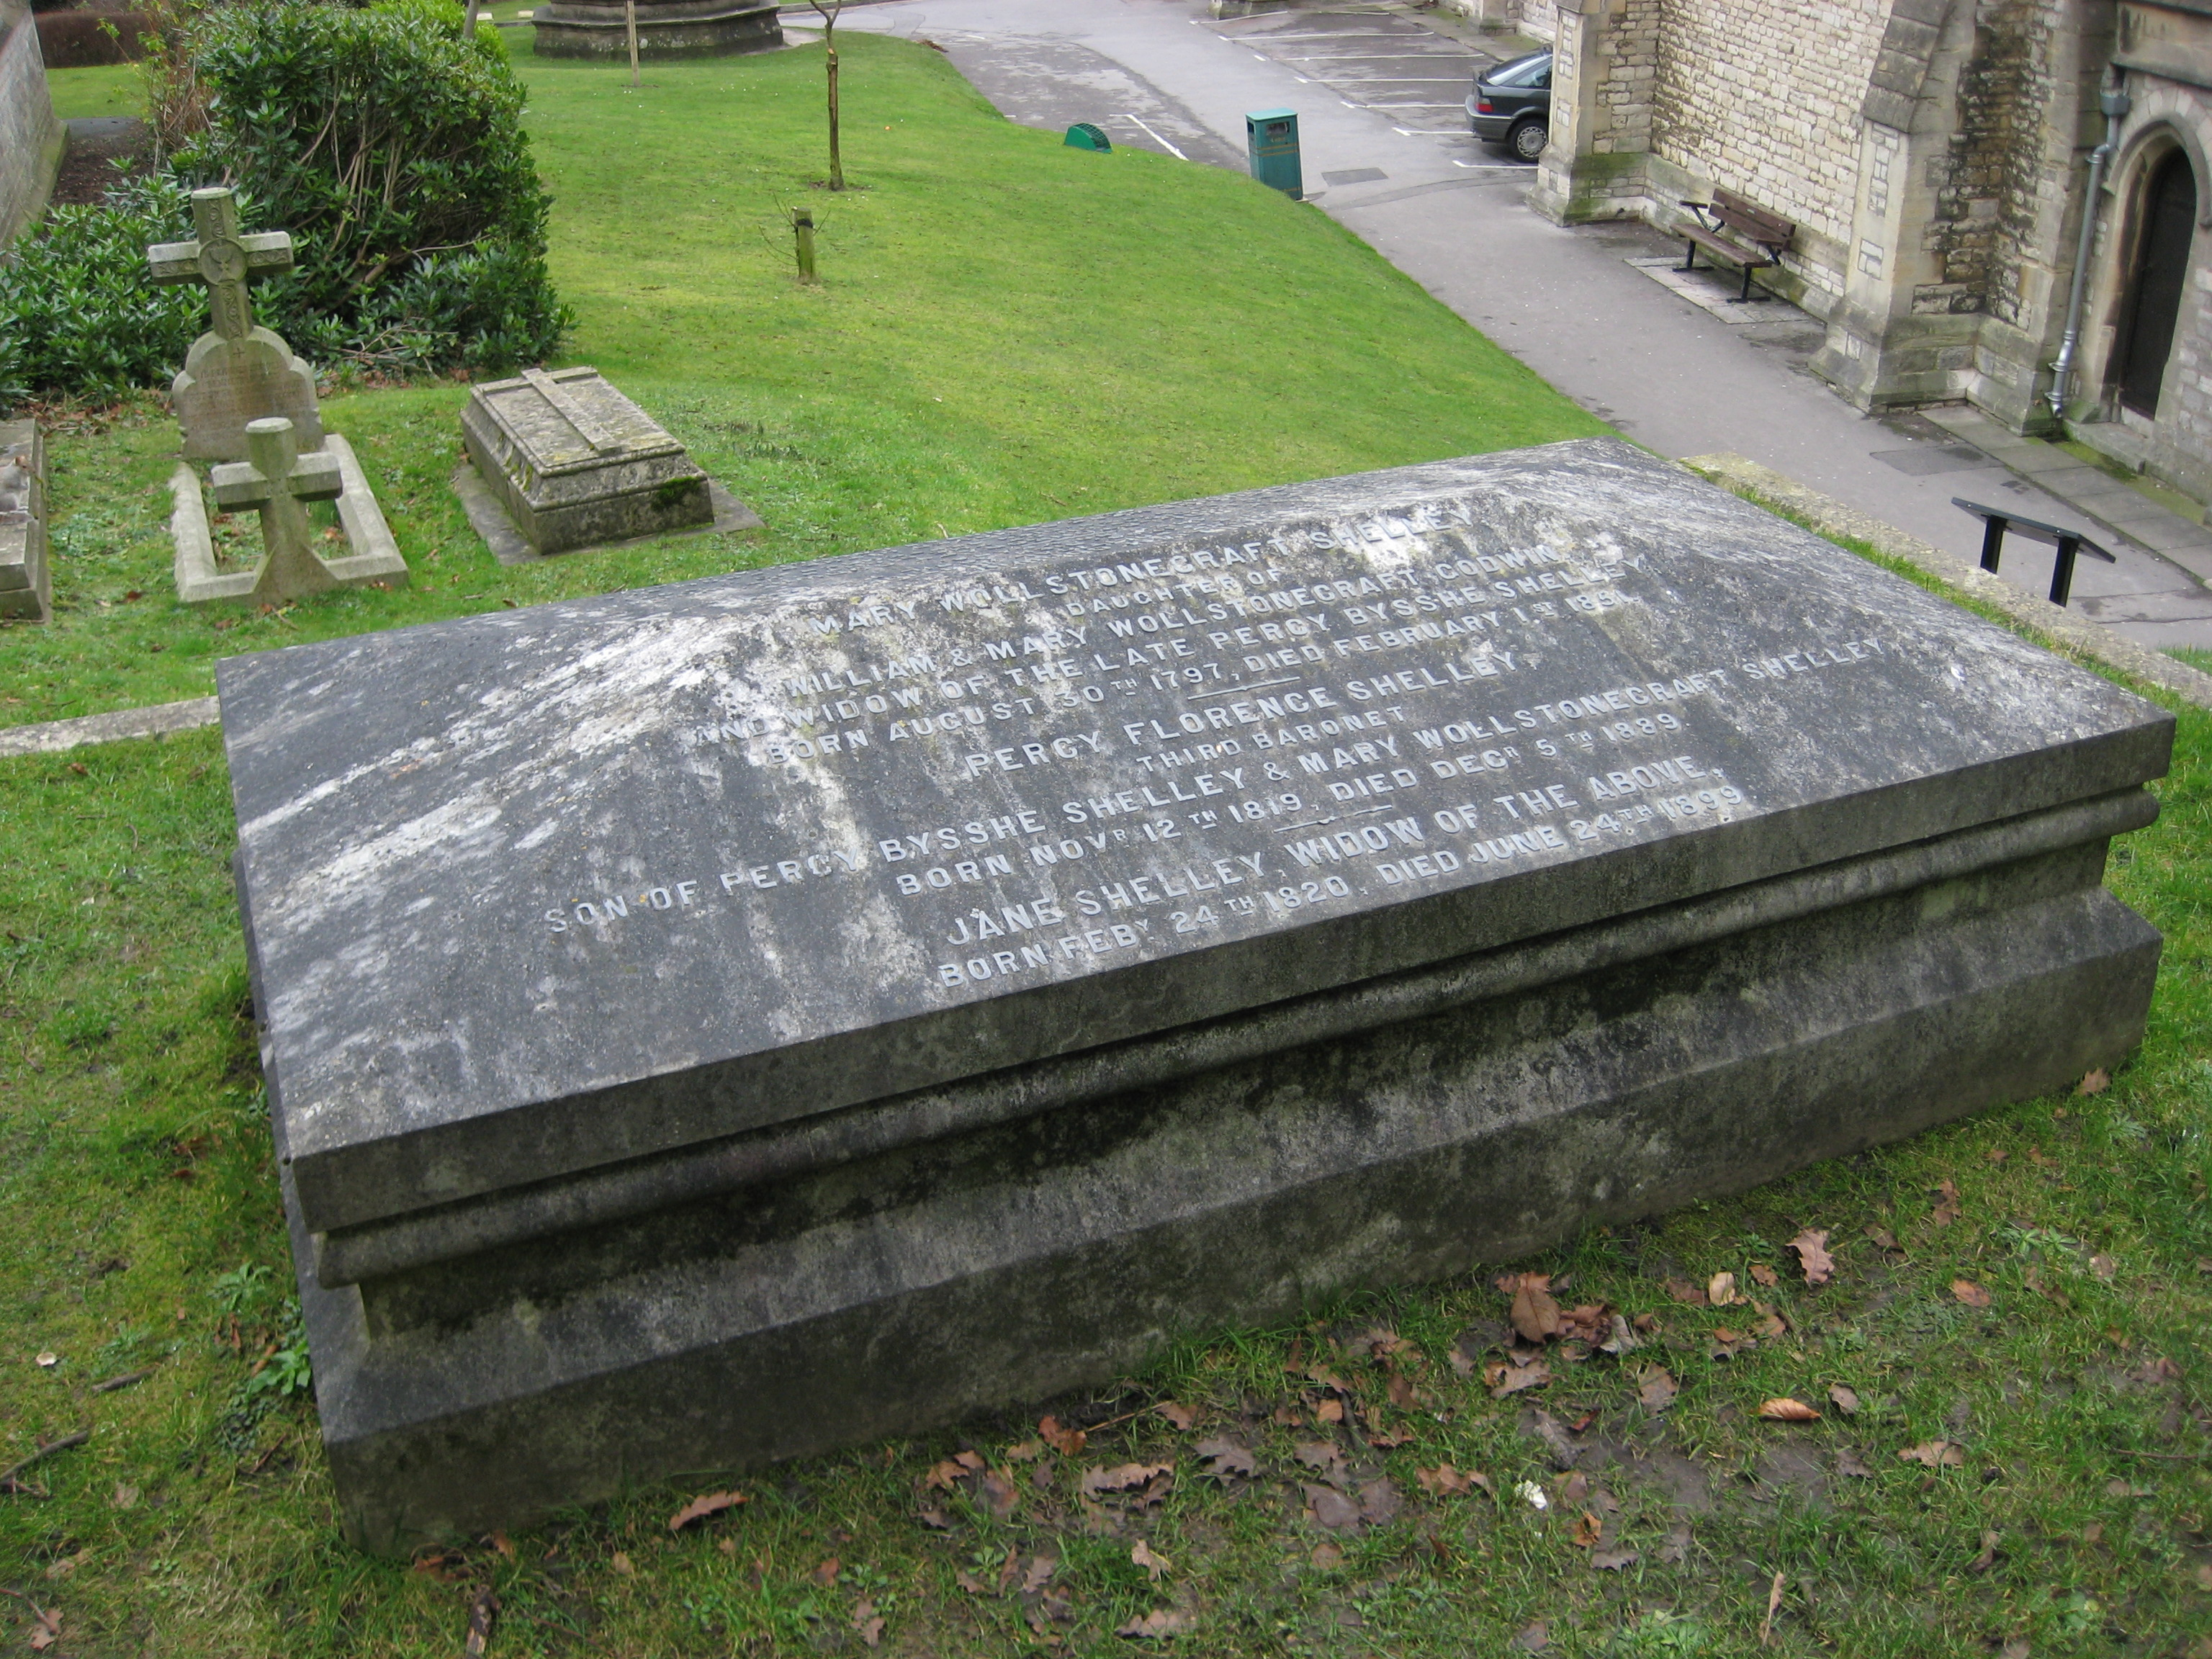 In order to fulfil Mary Shelley's wishes, Percy Florence and his wife Jane had the coffins of Mary Shelley's parents exhumed and buried with her in Bournemouth. Photo taken on January 13, 2008.